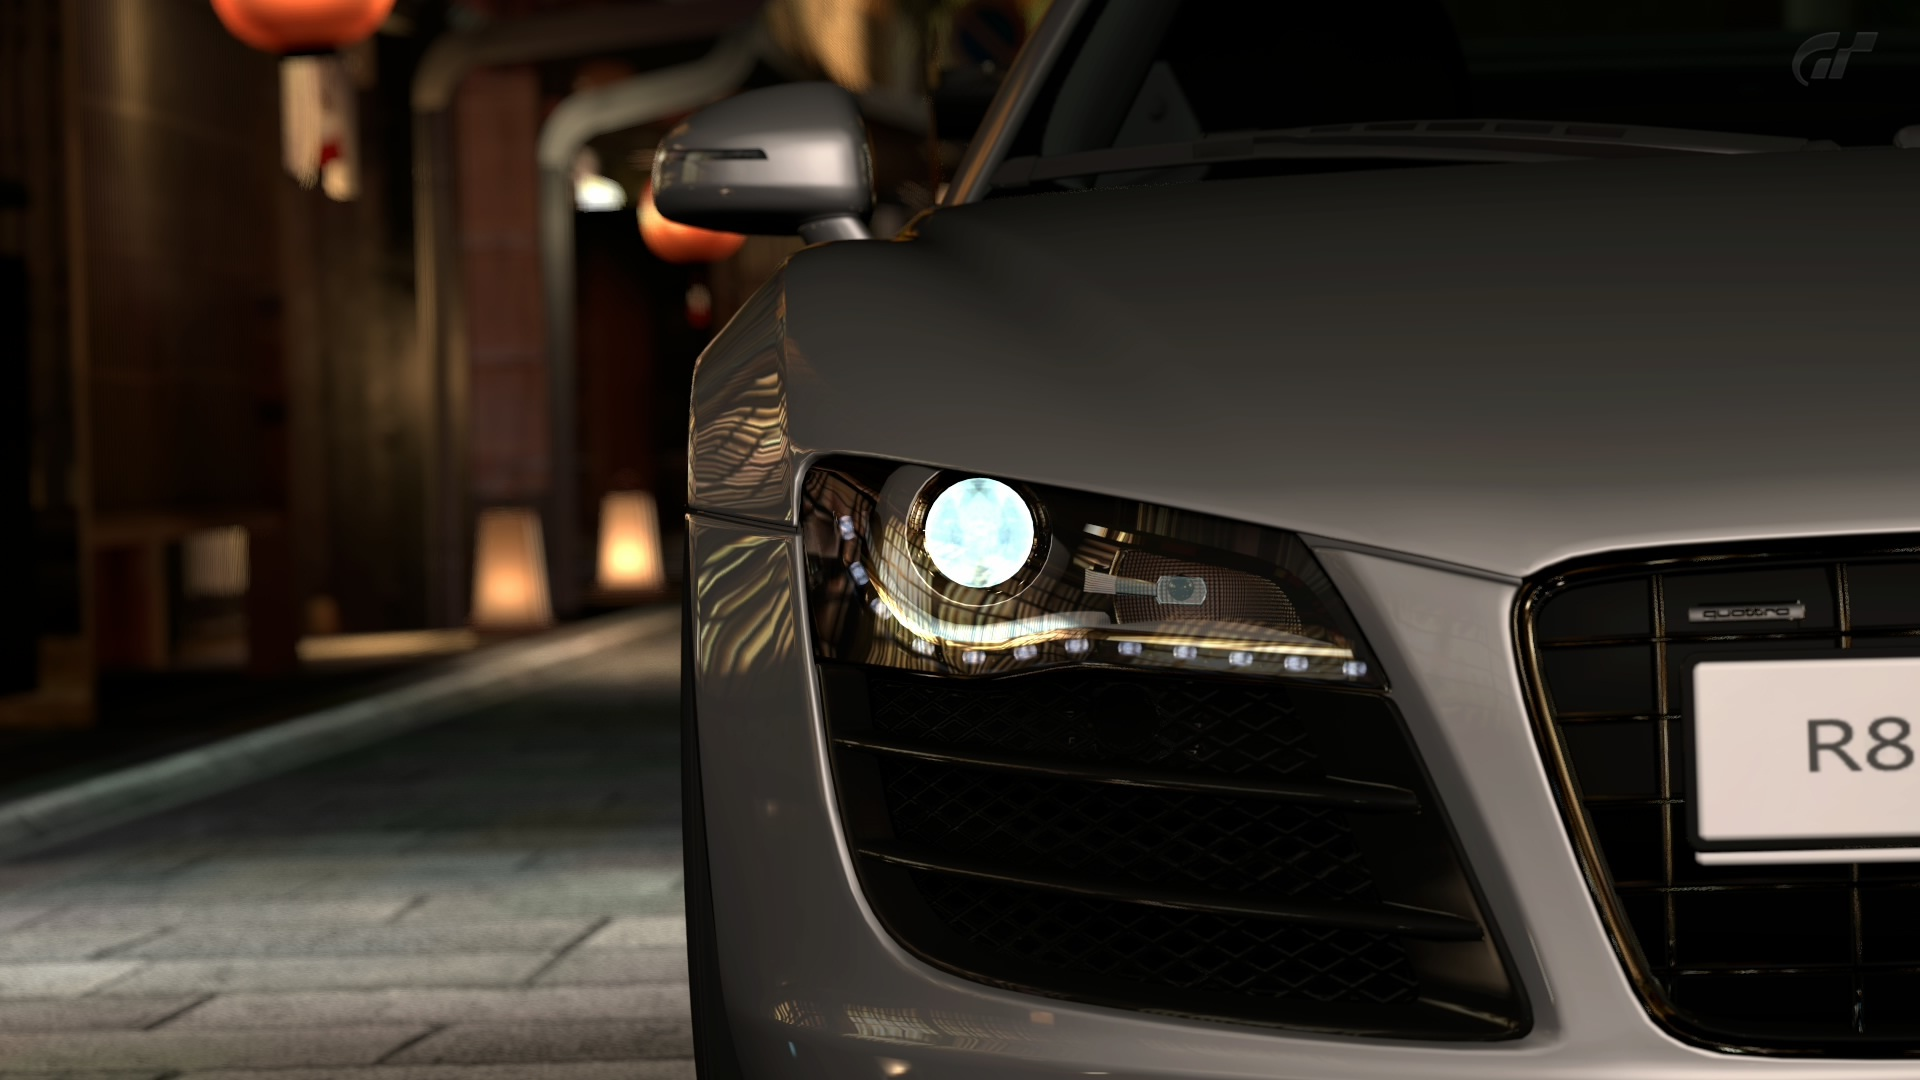 Hd Wallpapers Of Audi